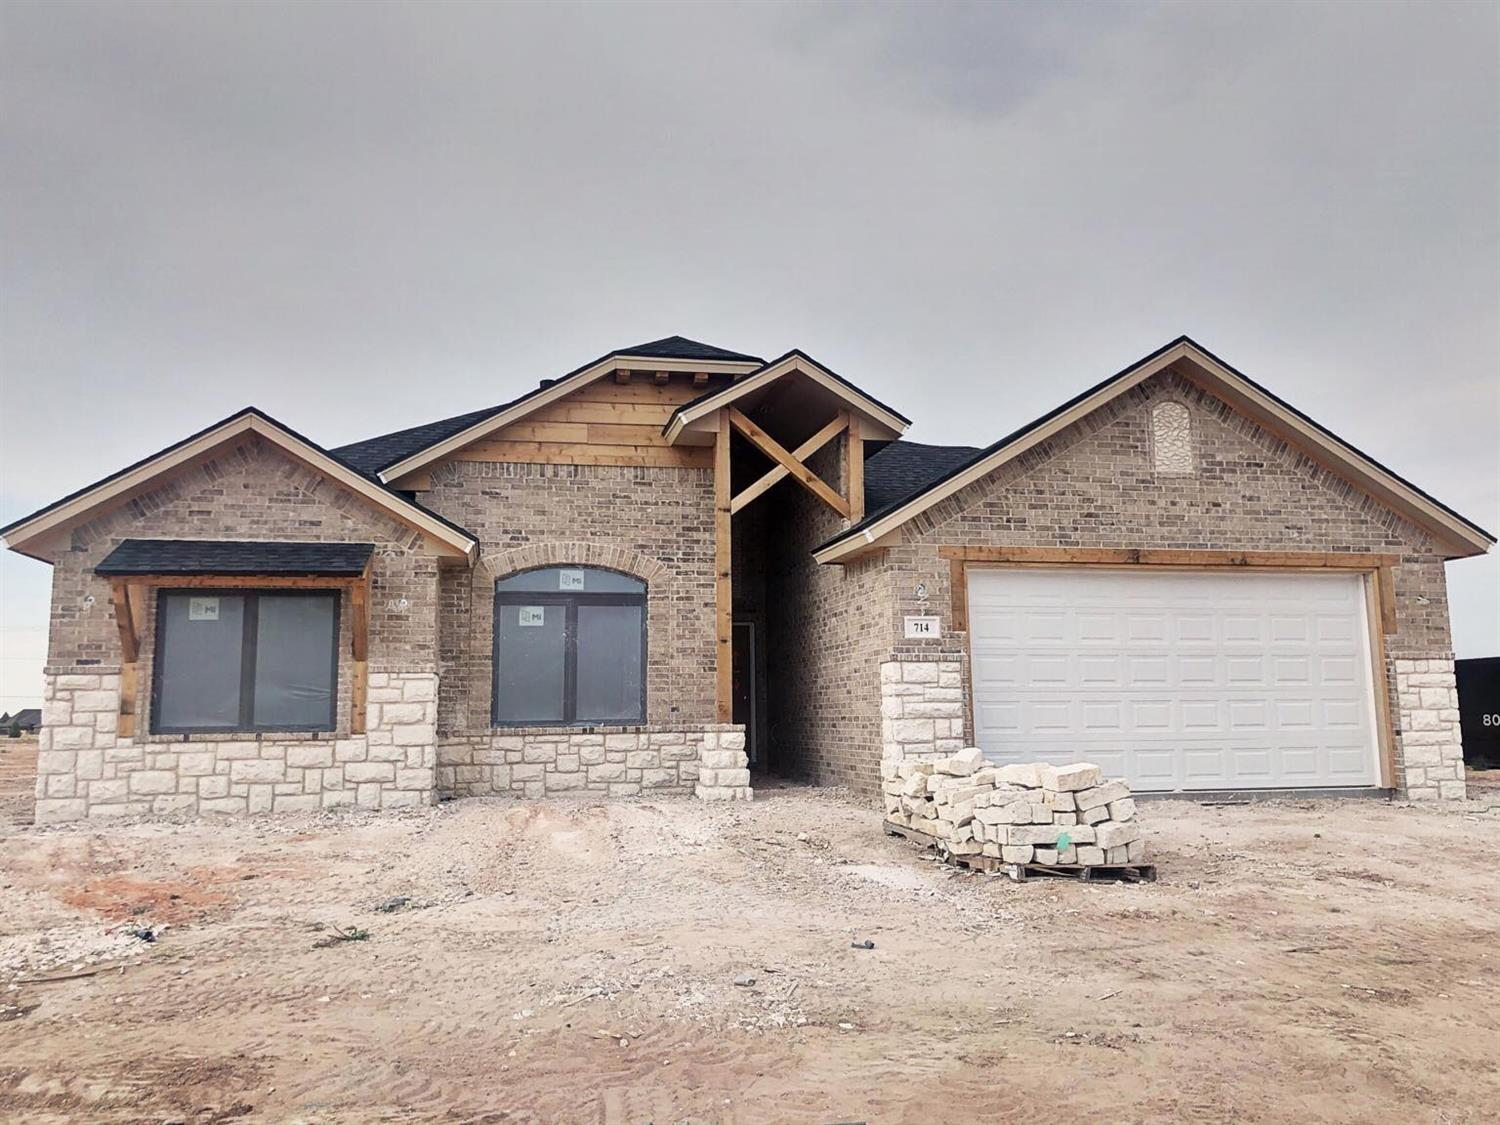 Quality is number one for Sunset Custom Homes & so is attention to detail. This 4 bedroom home is estimated to be completed OCT 2019. It is easy to see how special it is. The open concept is wonderful for gatherings as is the stainless steel appliances which include a separate oven & gas cooktop in the kitchen. Other features include: granite counters, separate tub & shower in master bath, isolated master bedroom. Come take a look at this great home today!